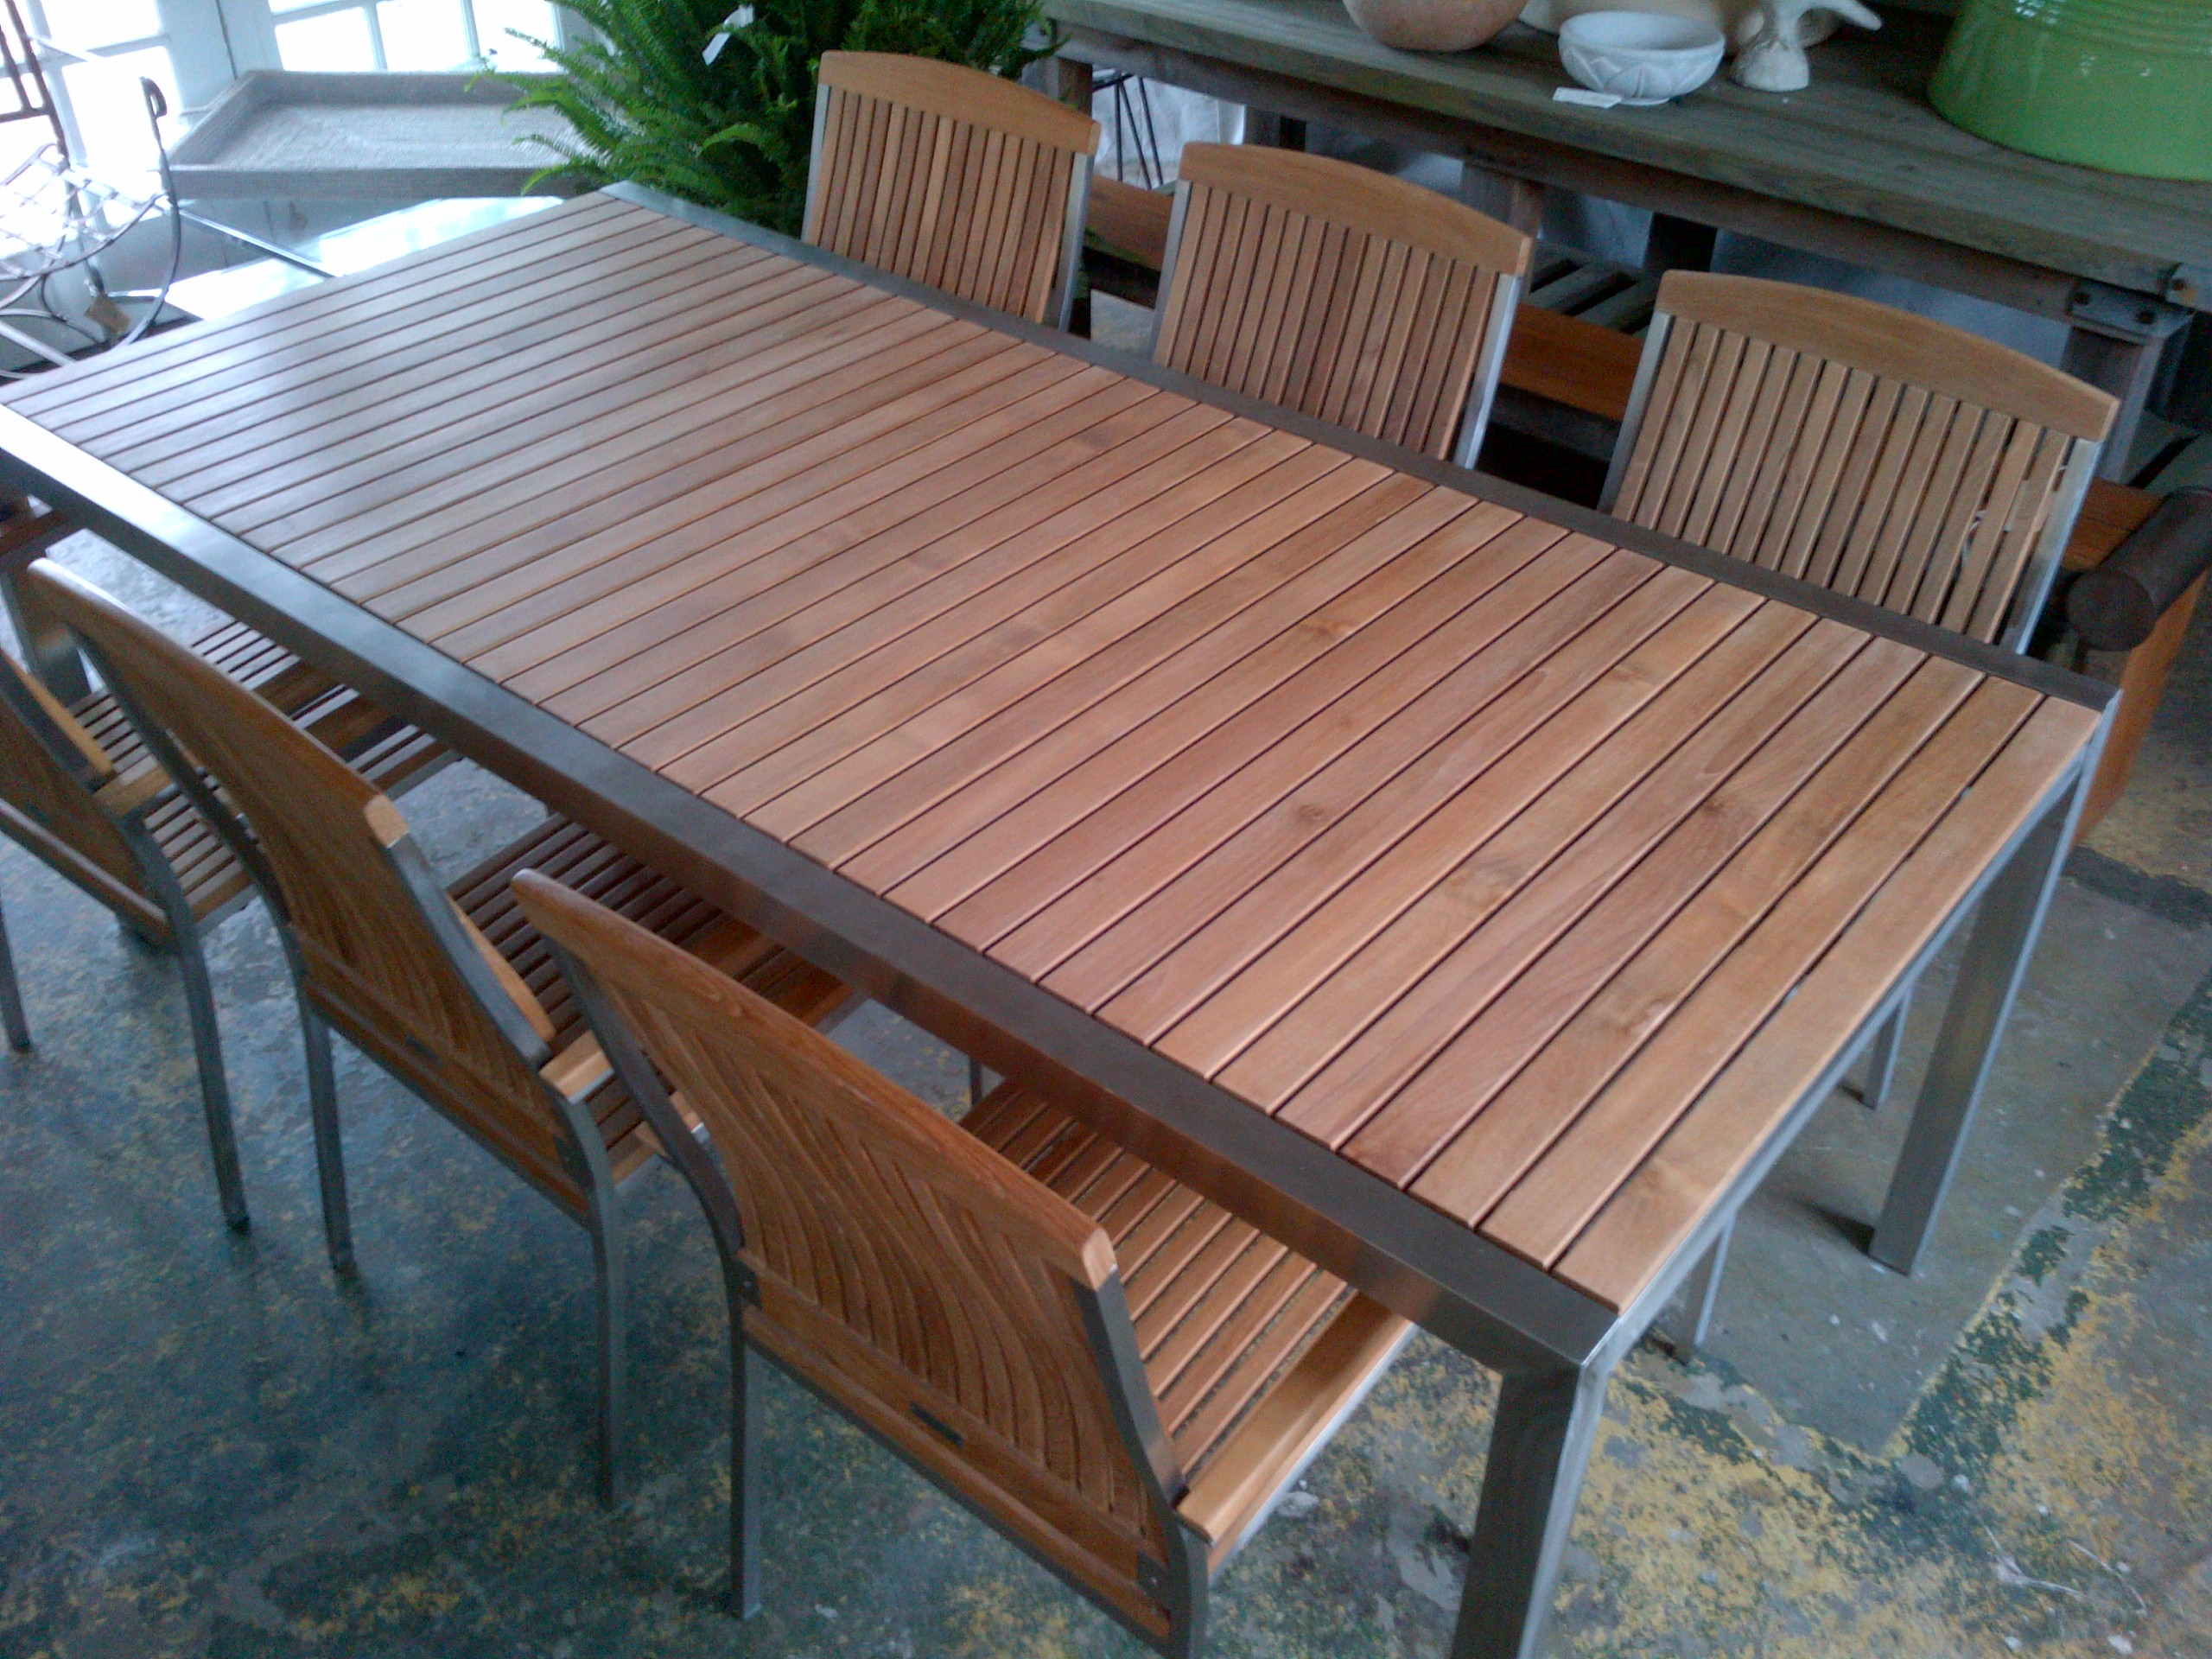 Teak Dining Table With Stainless Steel Frame